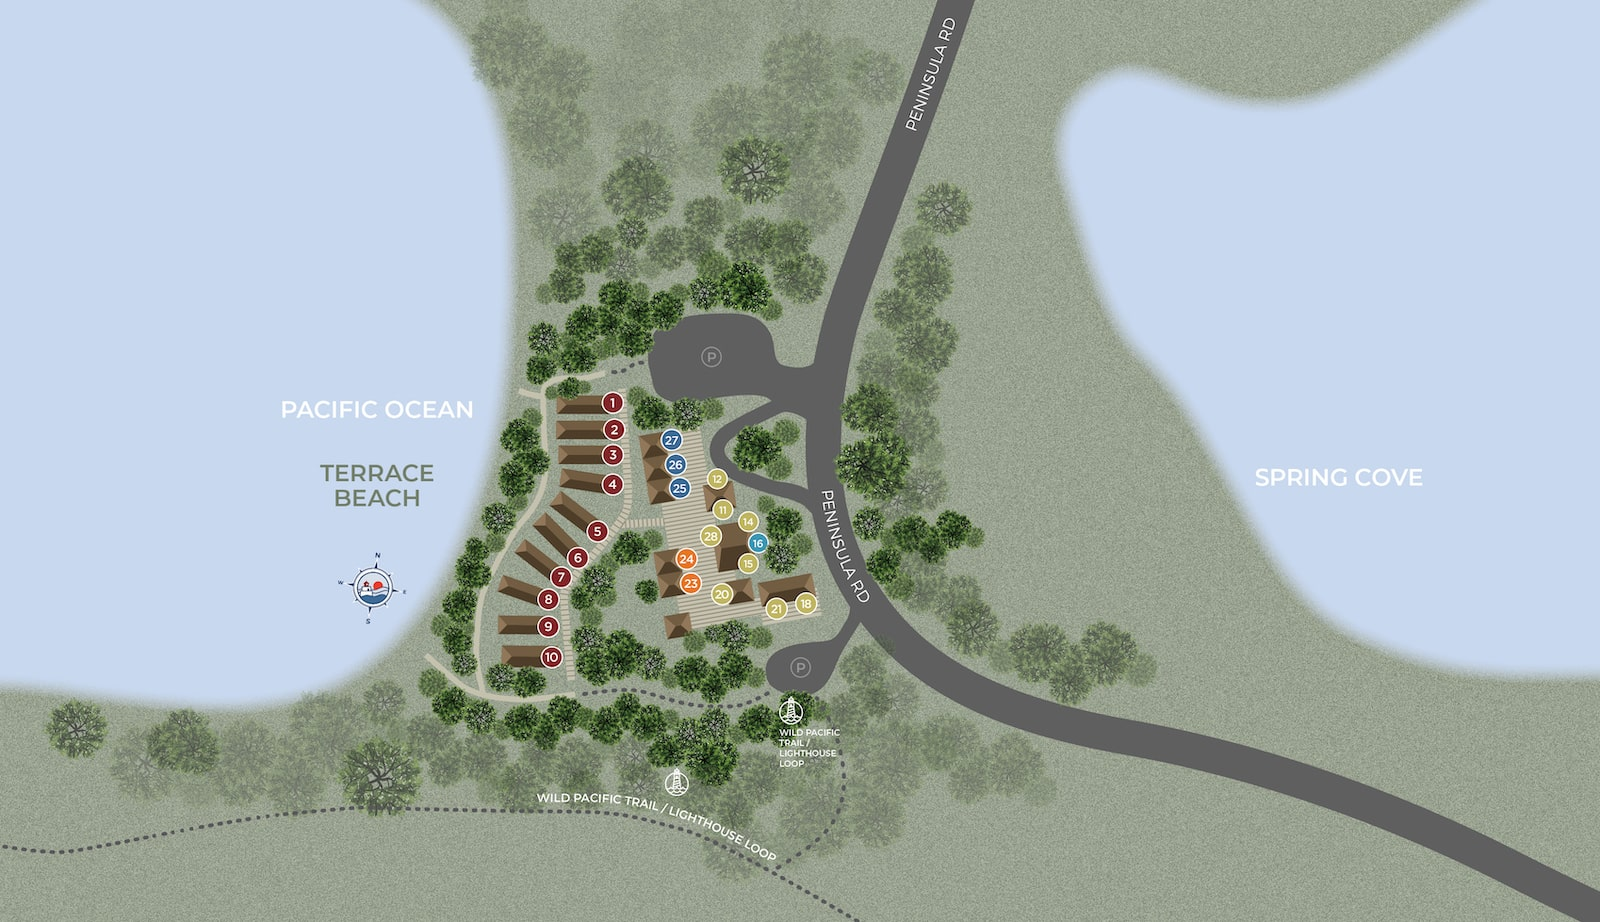 terrace beach aerial map